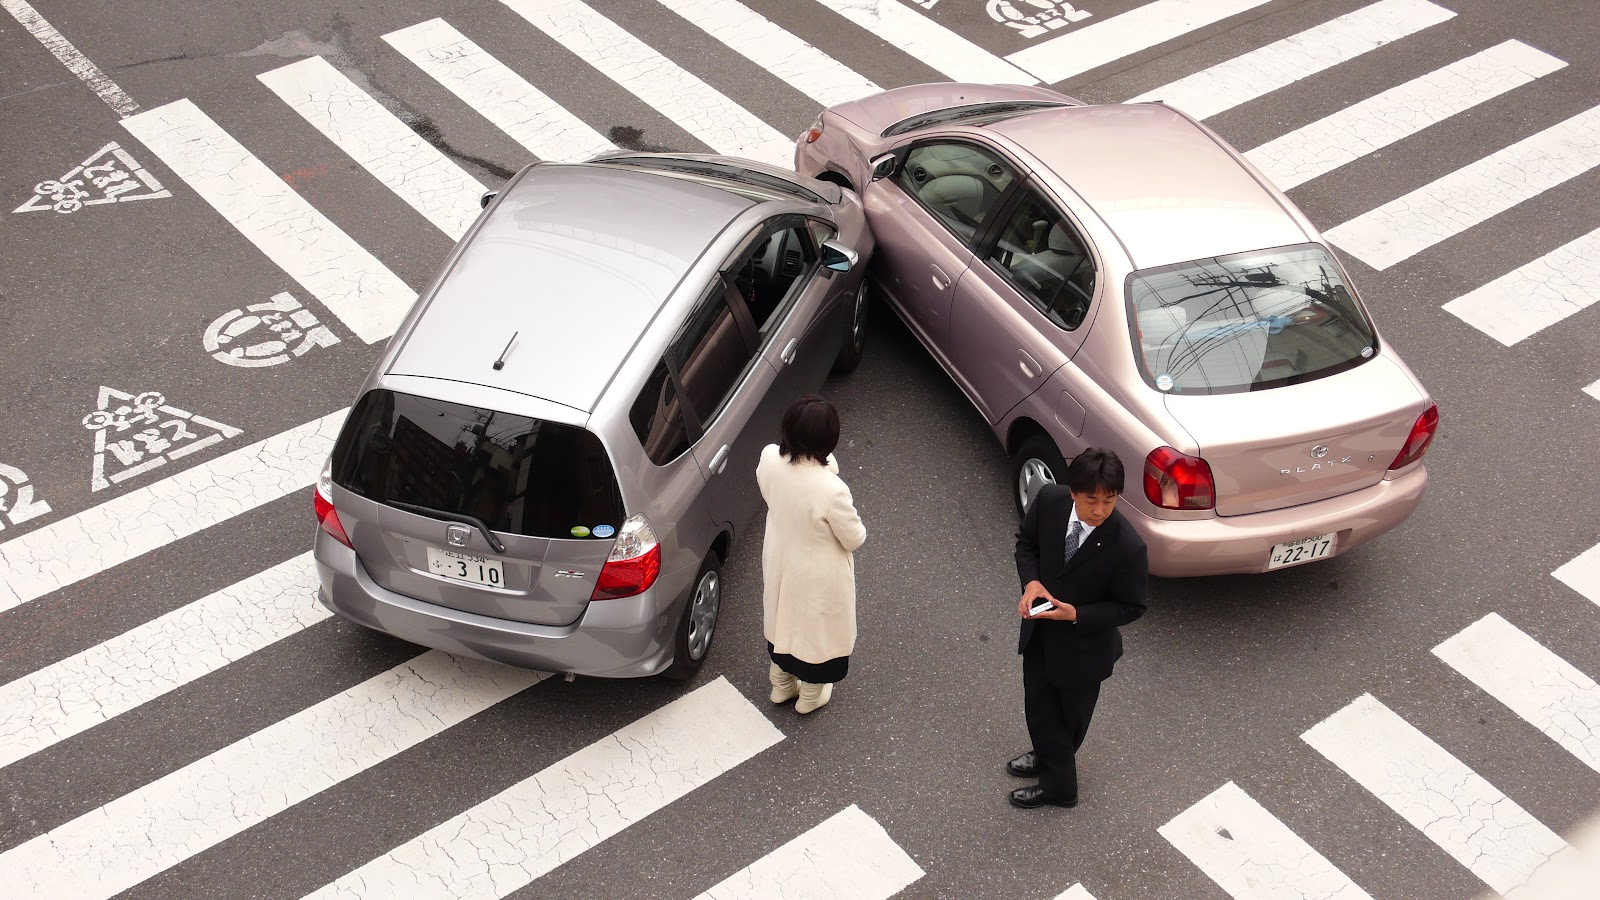 Japanese_car_accident.jpg